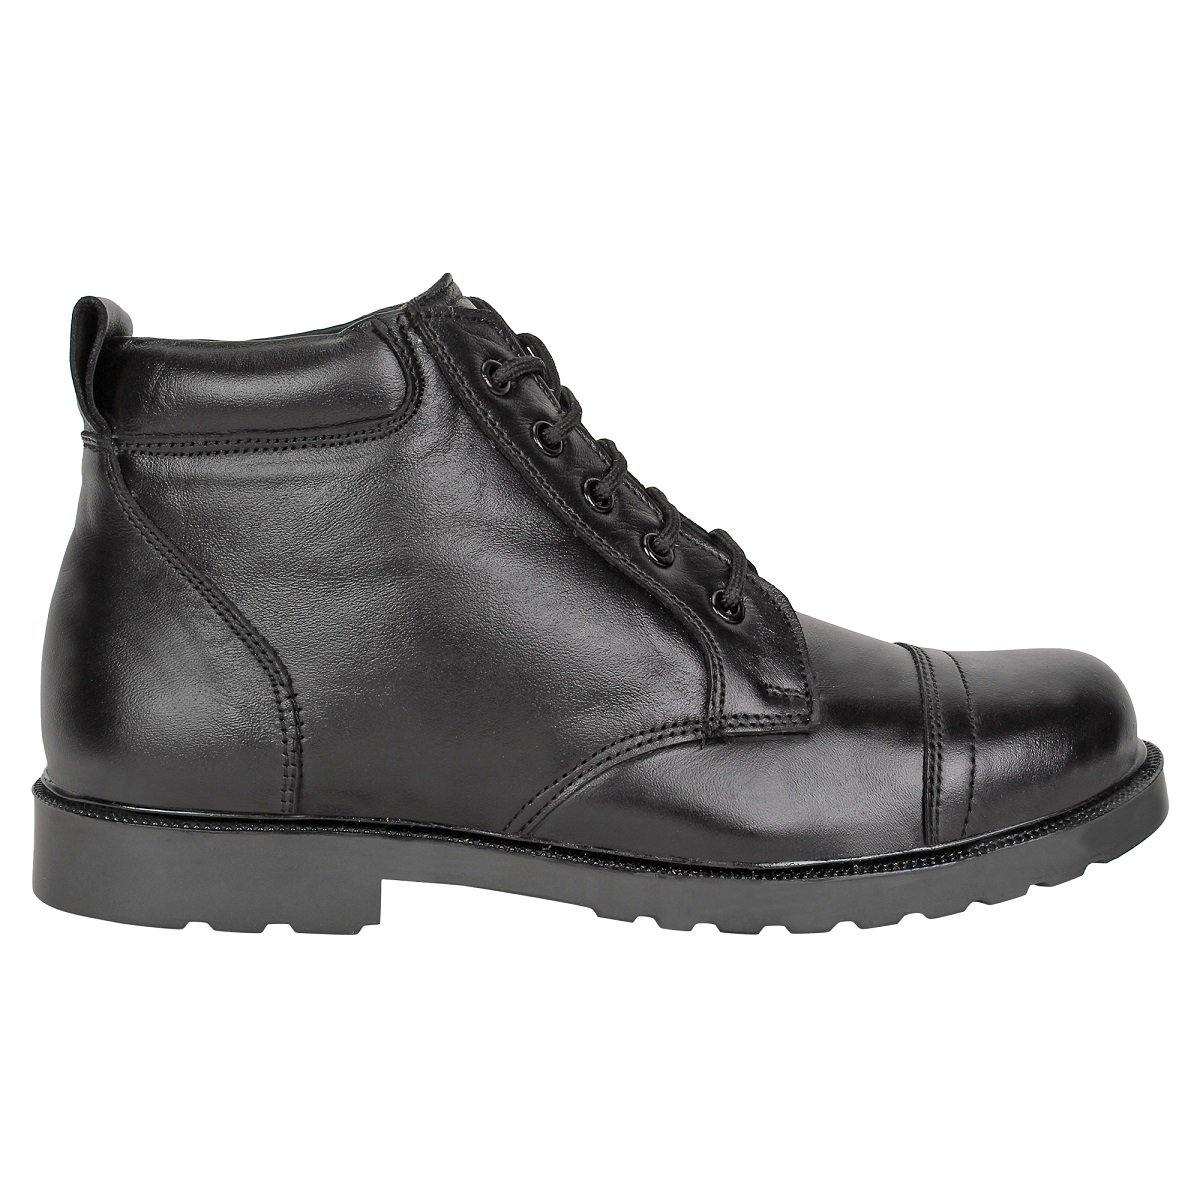 RoarKing Leather Boots for Men-Minor Dfect